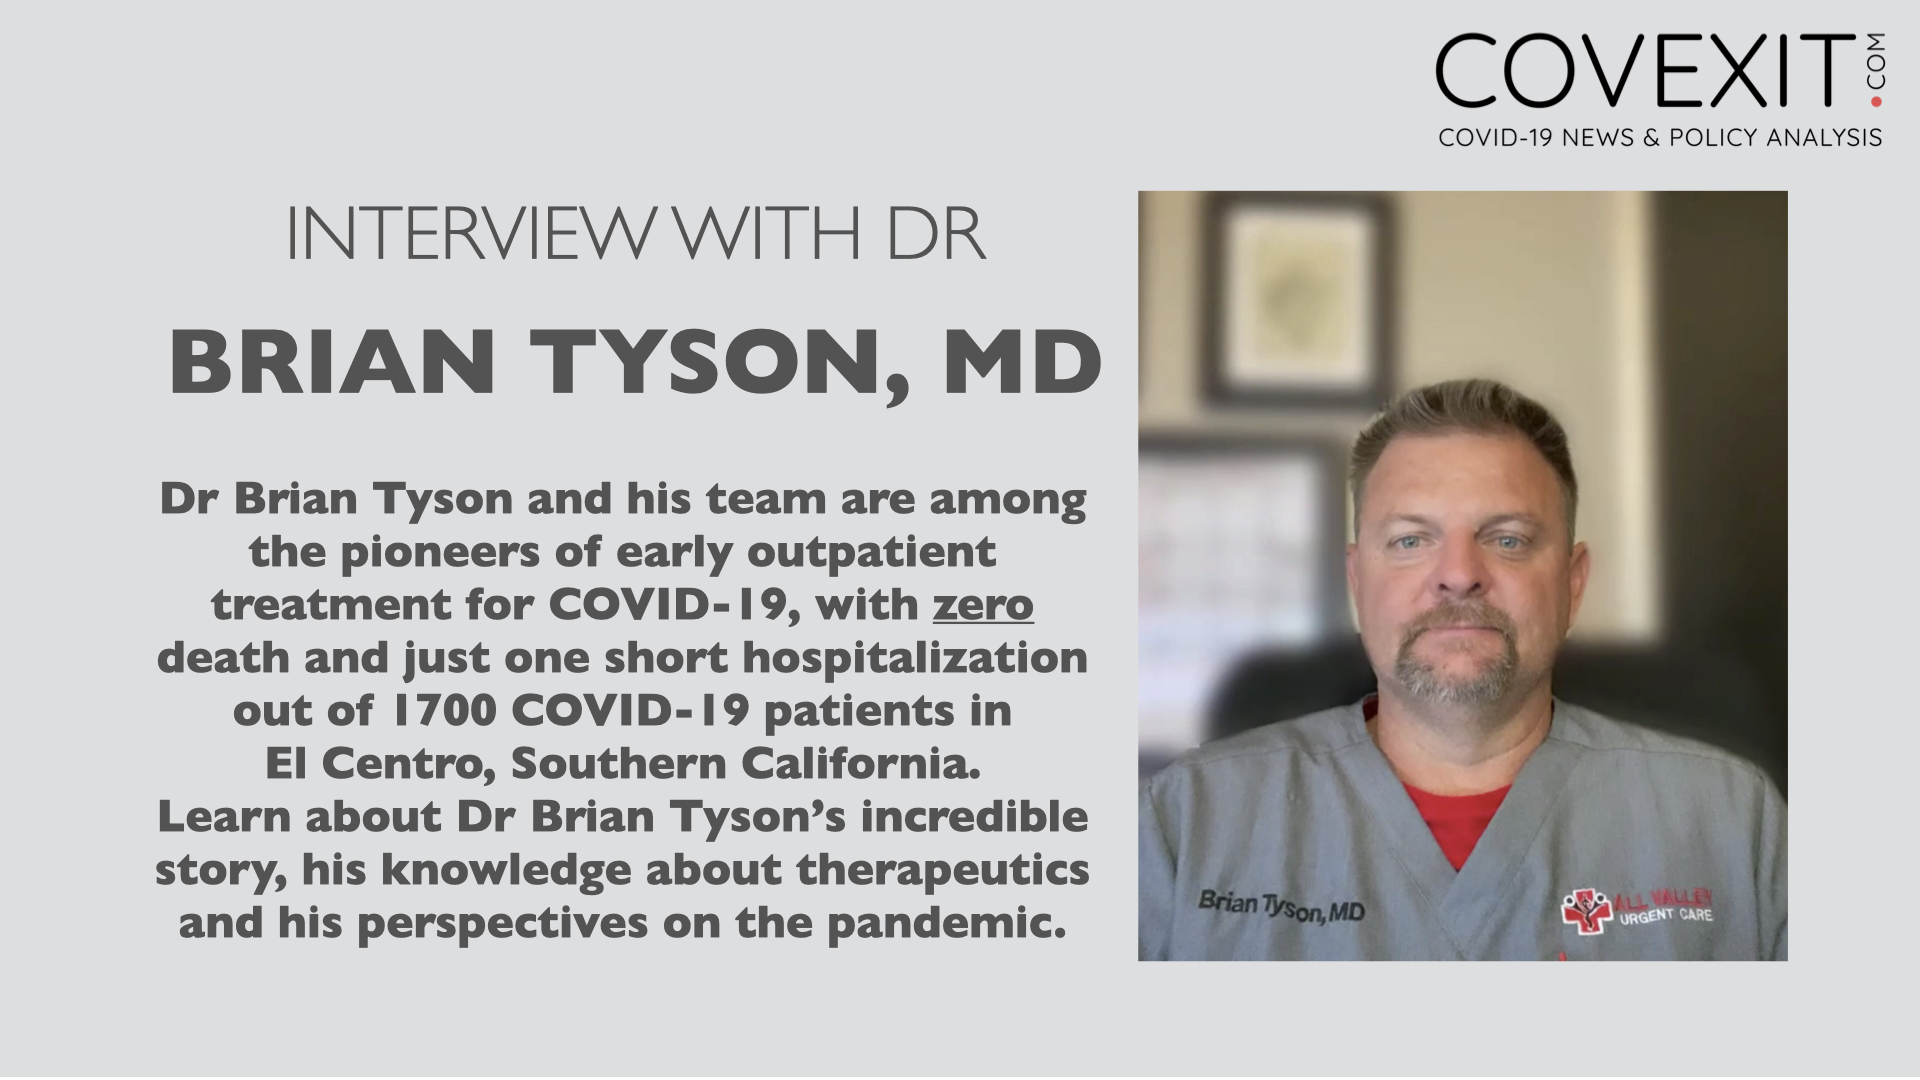 Interview with Brian Tyson, MD, from California - a Pioneer of Outpatient Treatment for COVID-19